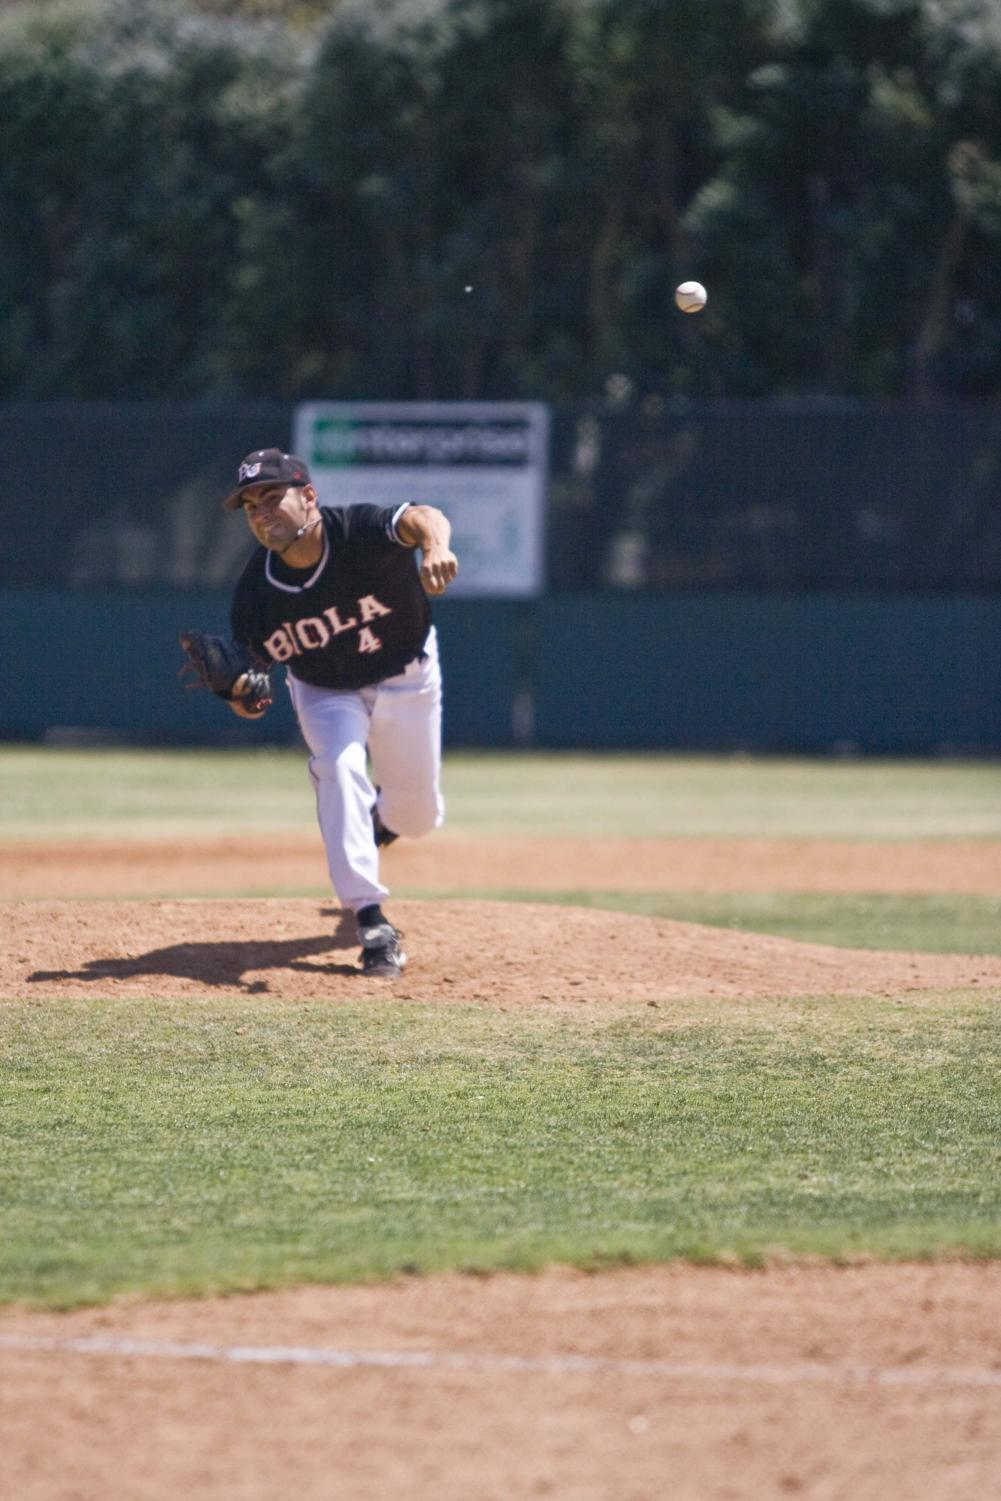 Senior Jimmy Johnson pitches against Azusa Pacific in one of the last regular season games of 2008.